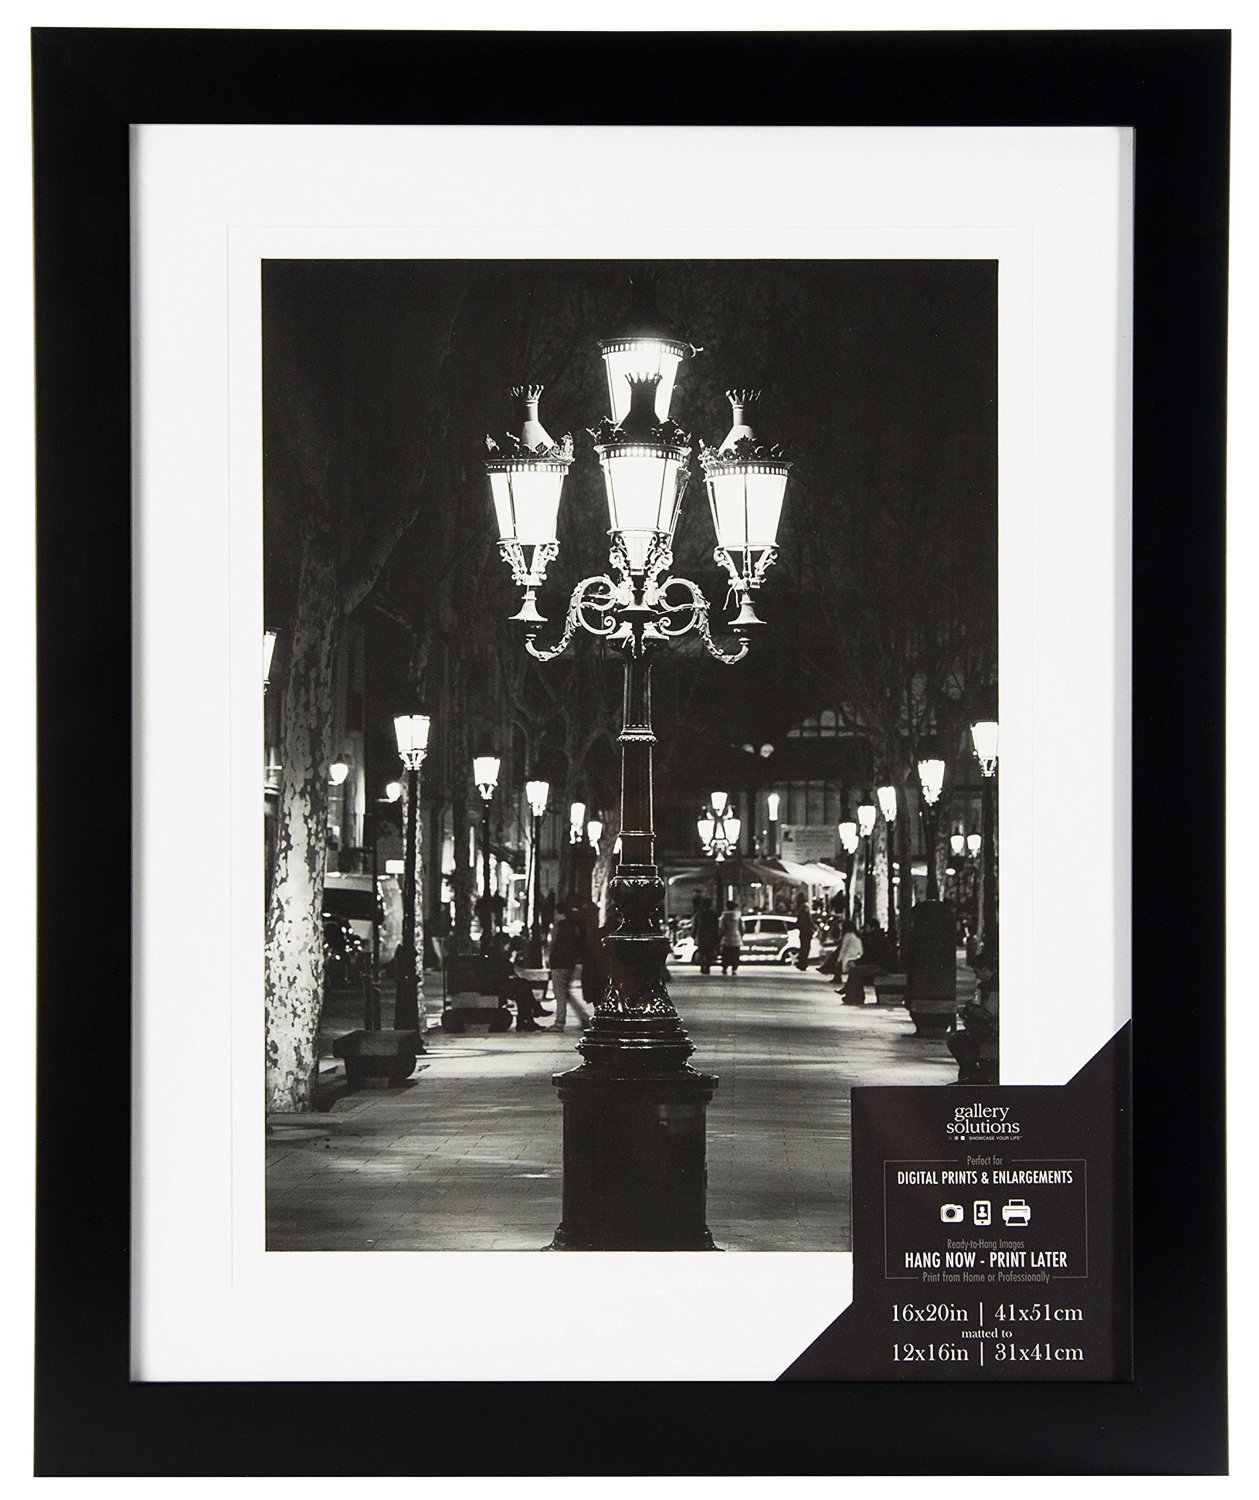 Cheap Frame 12 X 16, find Frame 12 X 16 deals on line at Alibaba.com